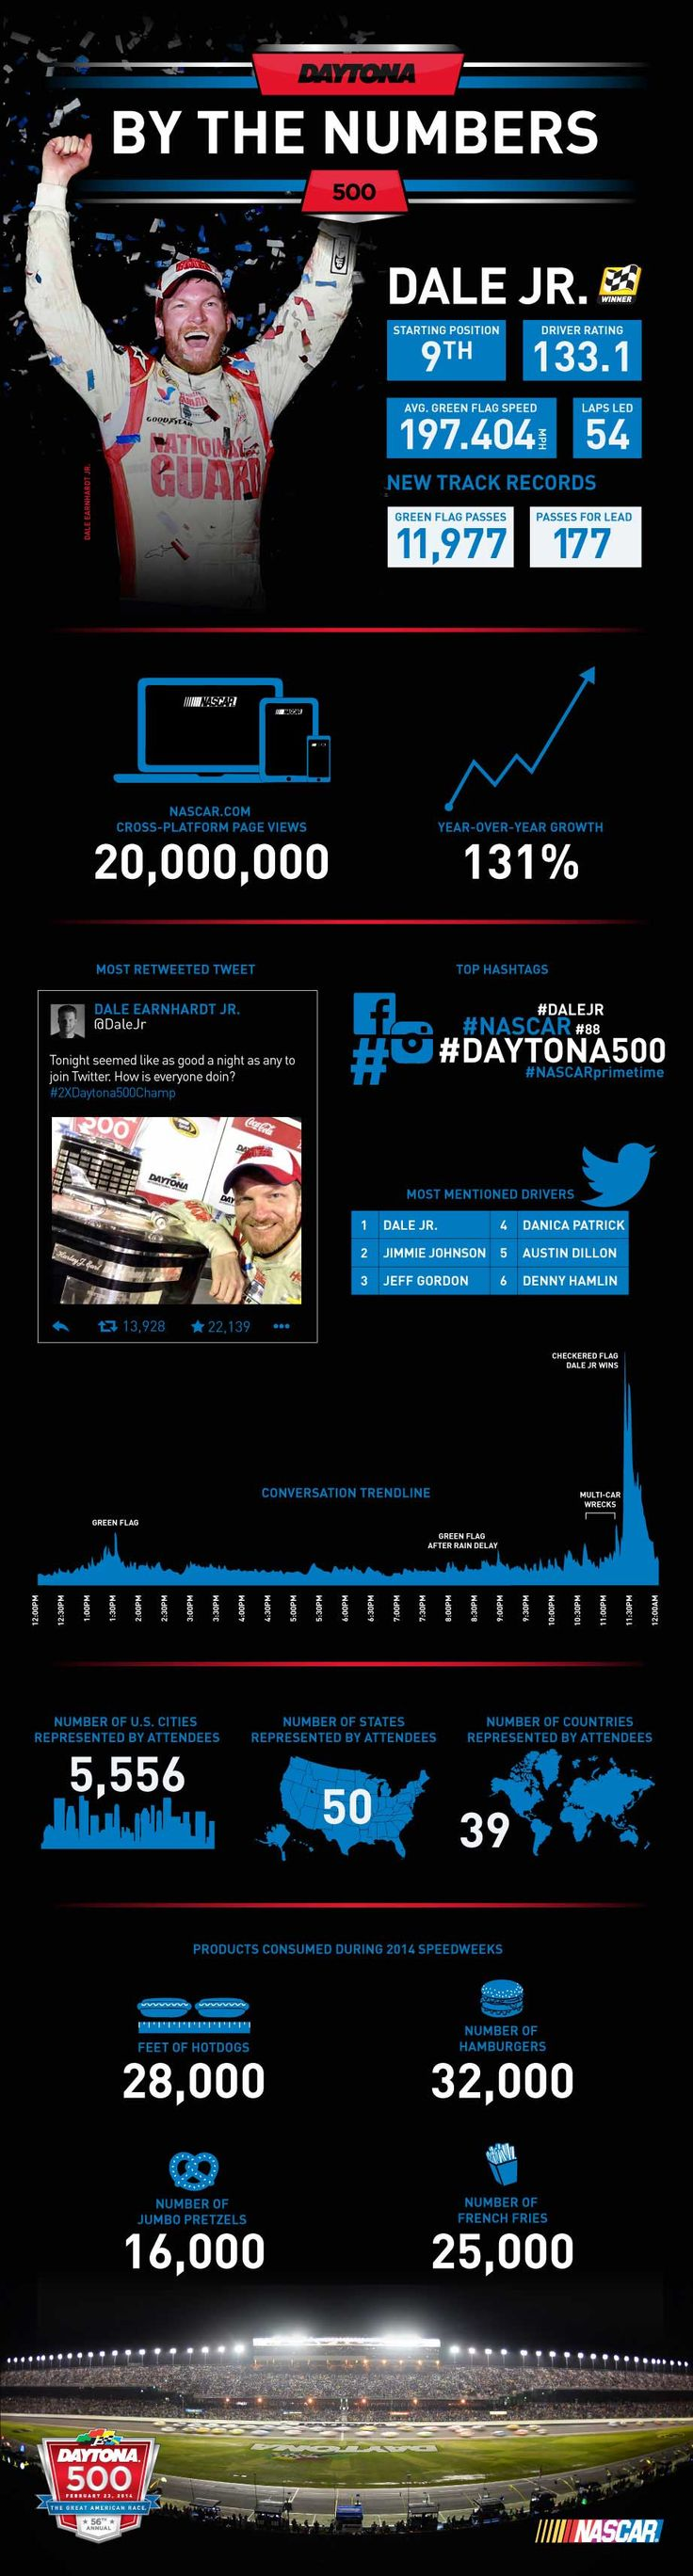 "2014 Daytona 500 by the Numbers [Infographic]. Who are your picks to win ""The Great American Race"" this coming Sunday, February 22, 2015?"